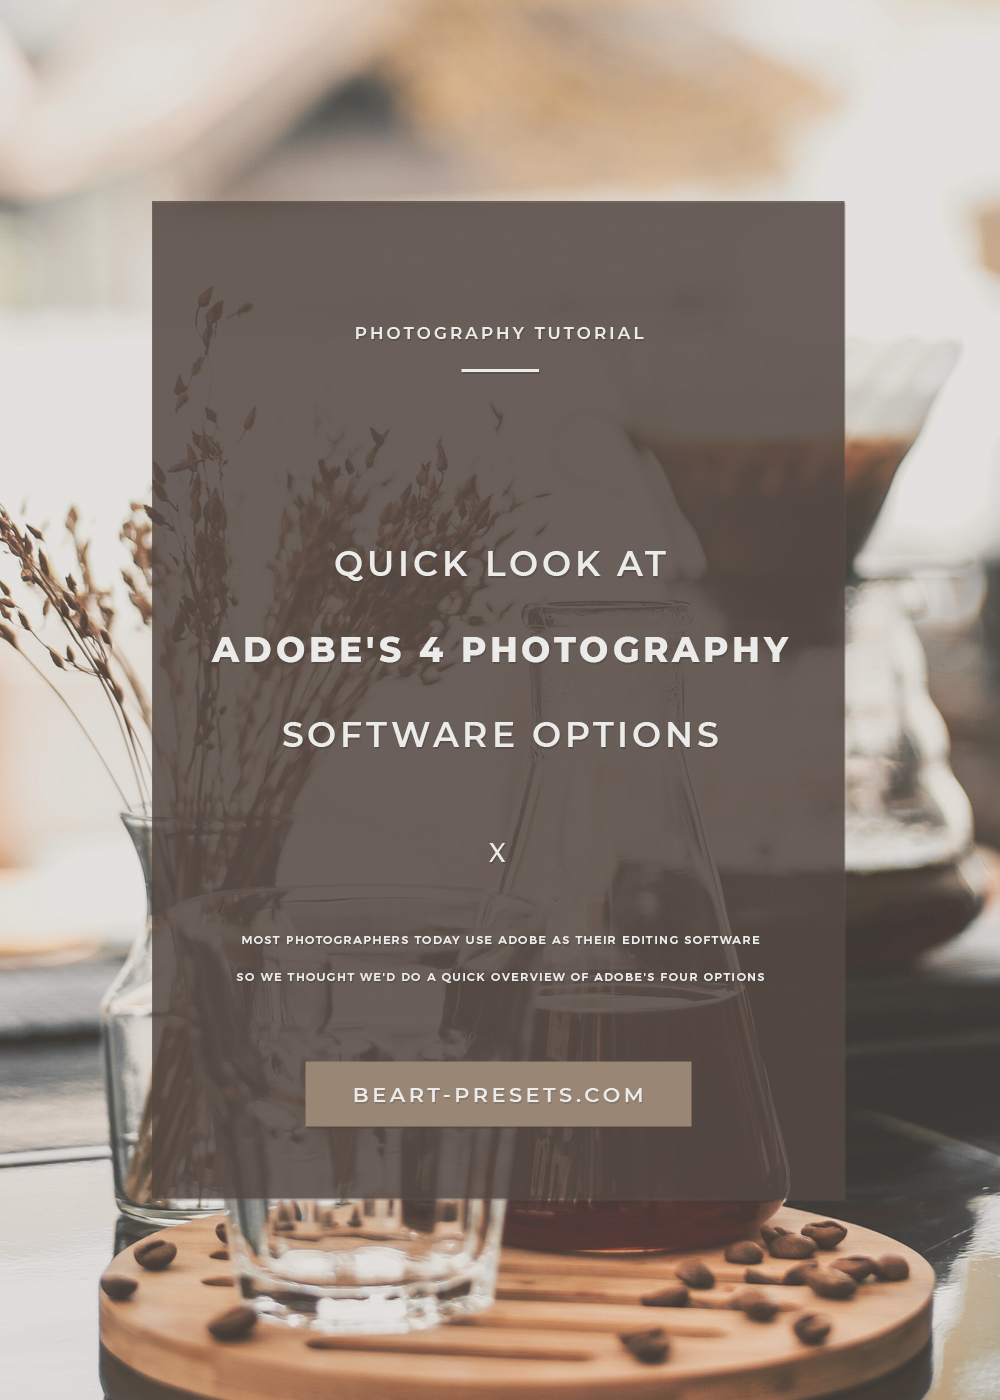 ADOBE'S 4 PHOTOGRAPHY SOFTWARE OPTIONS